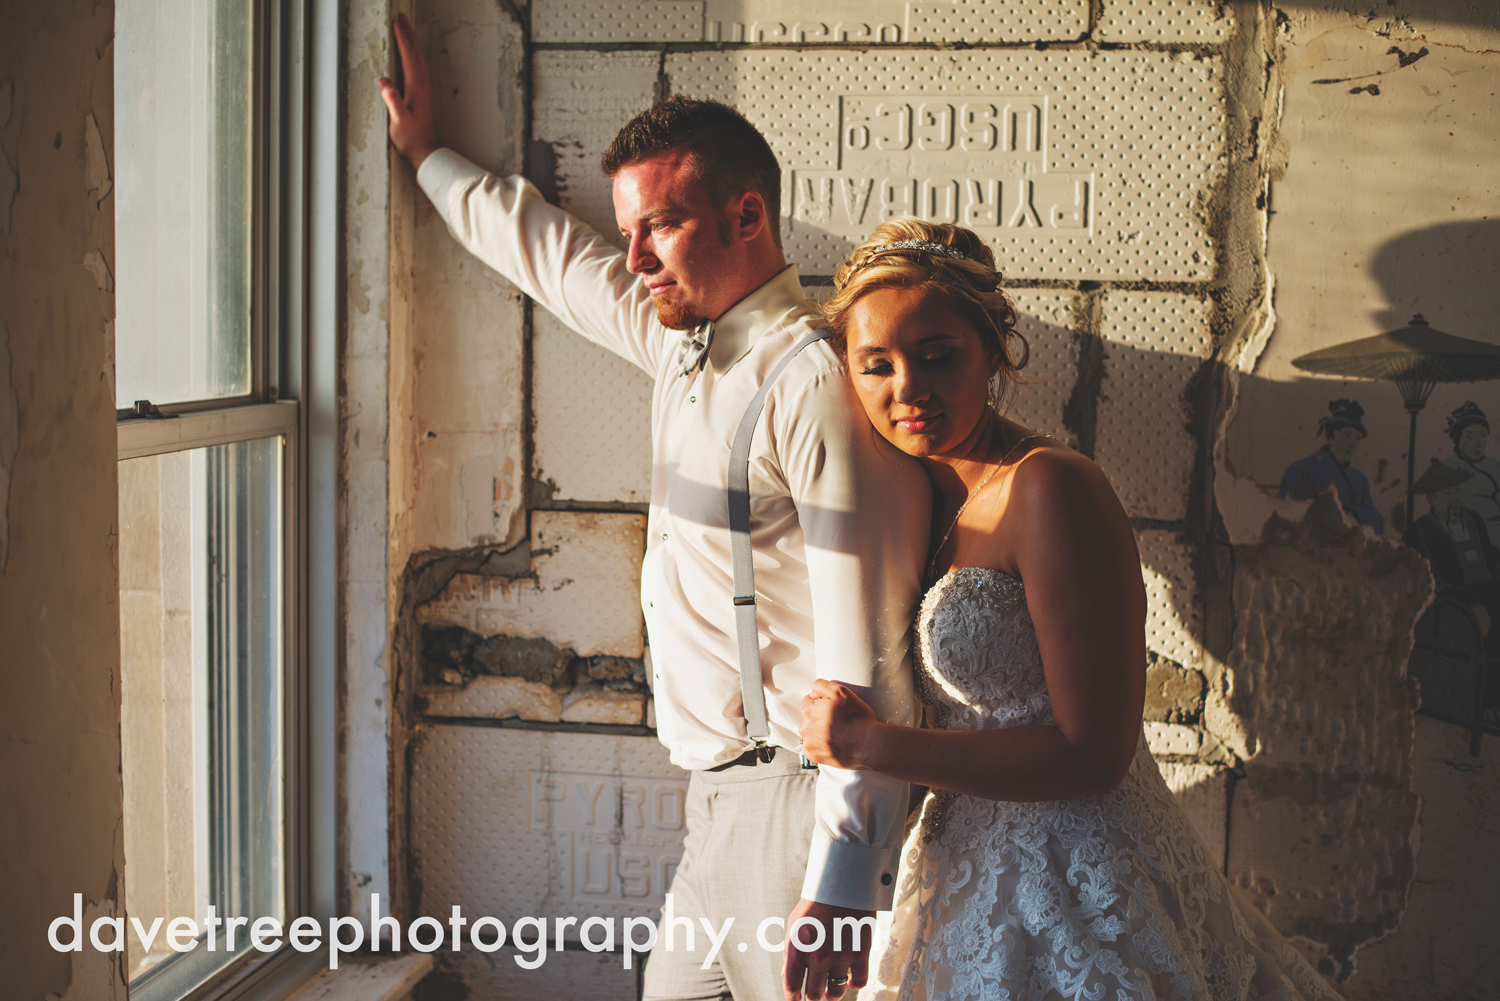 veranda_wedding_photographer_st_joseph_wedding_26.jpg